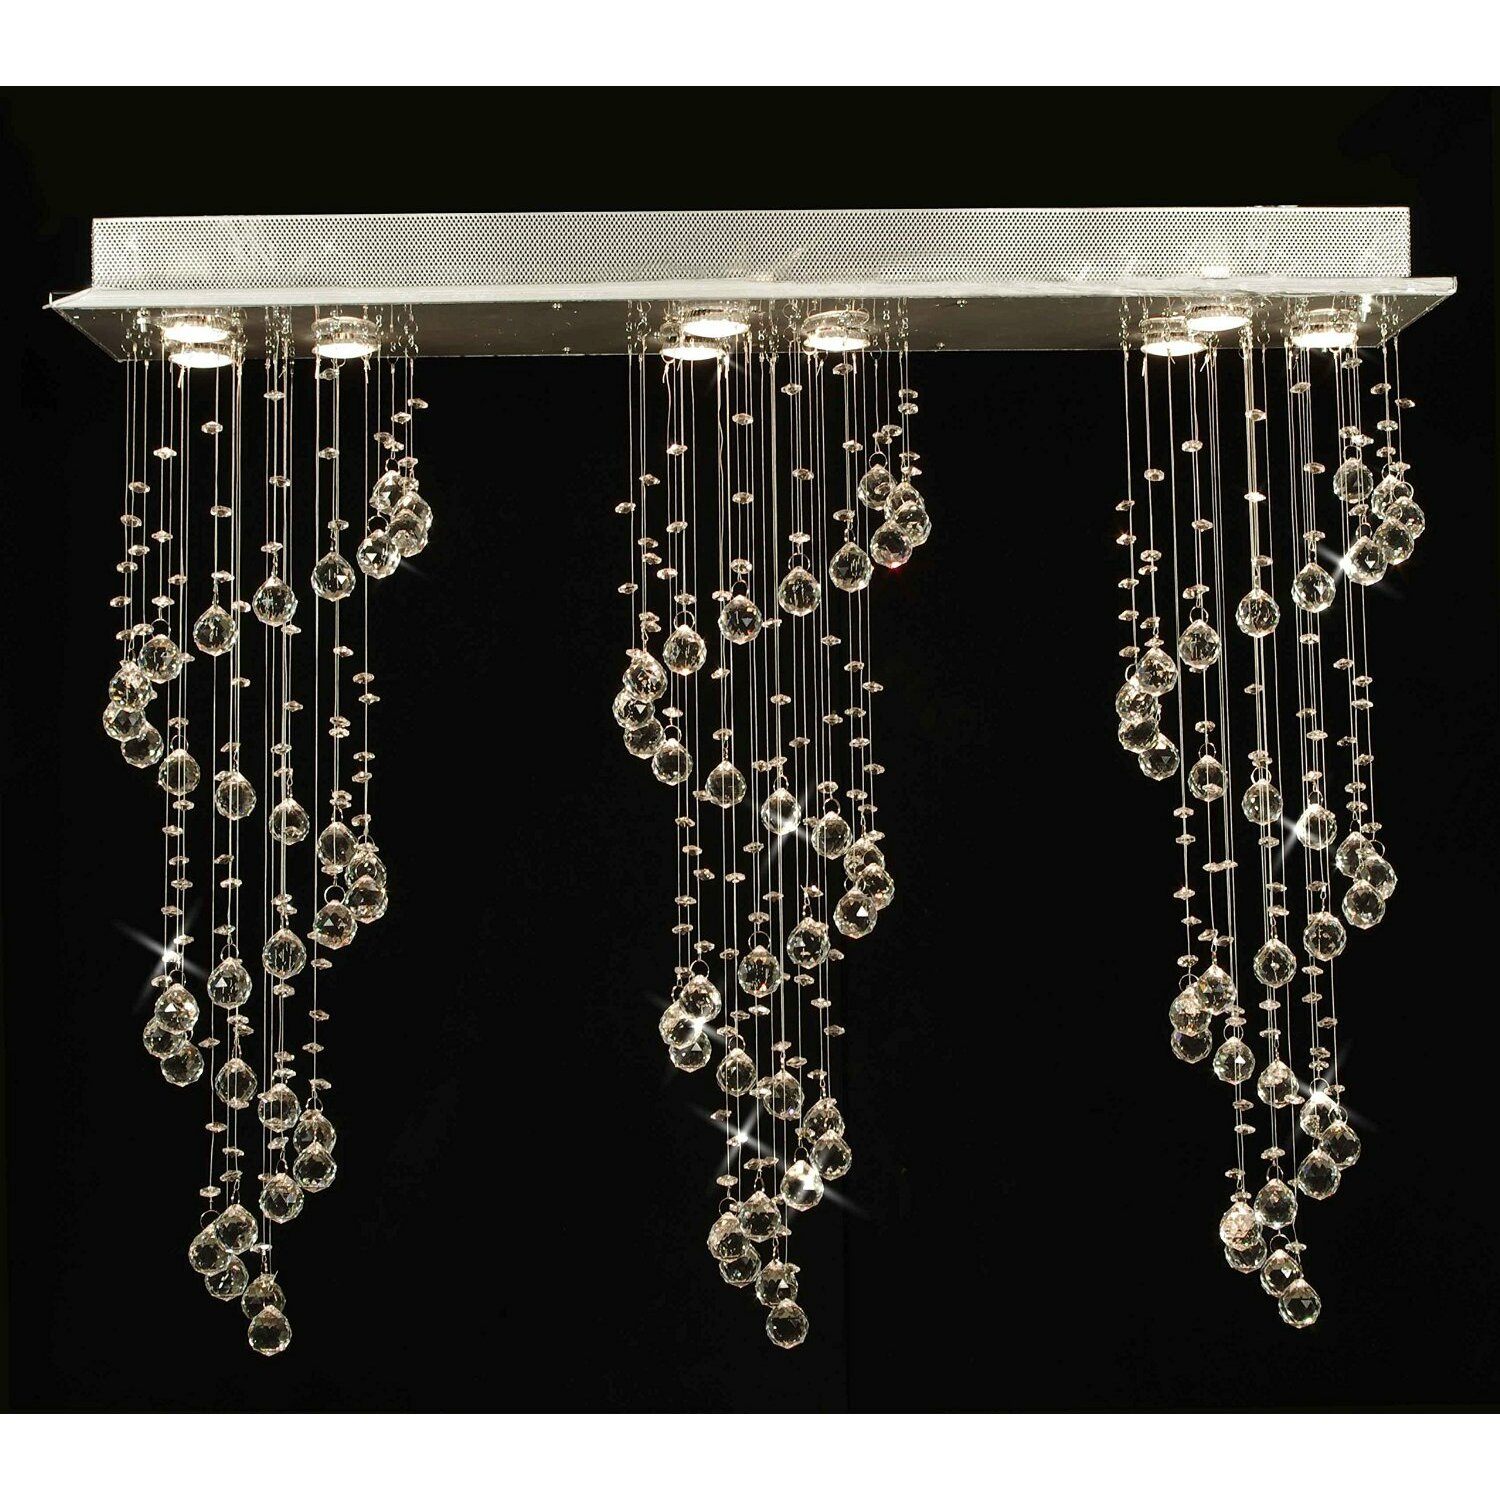 Wayfair Chandelier: EverythingHome 9 Light Crystal Chandelier